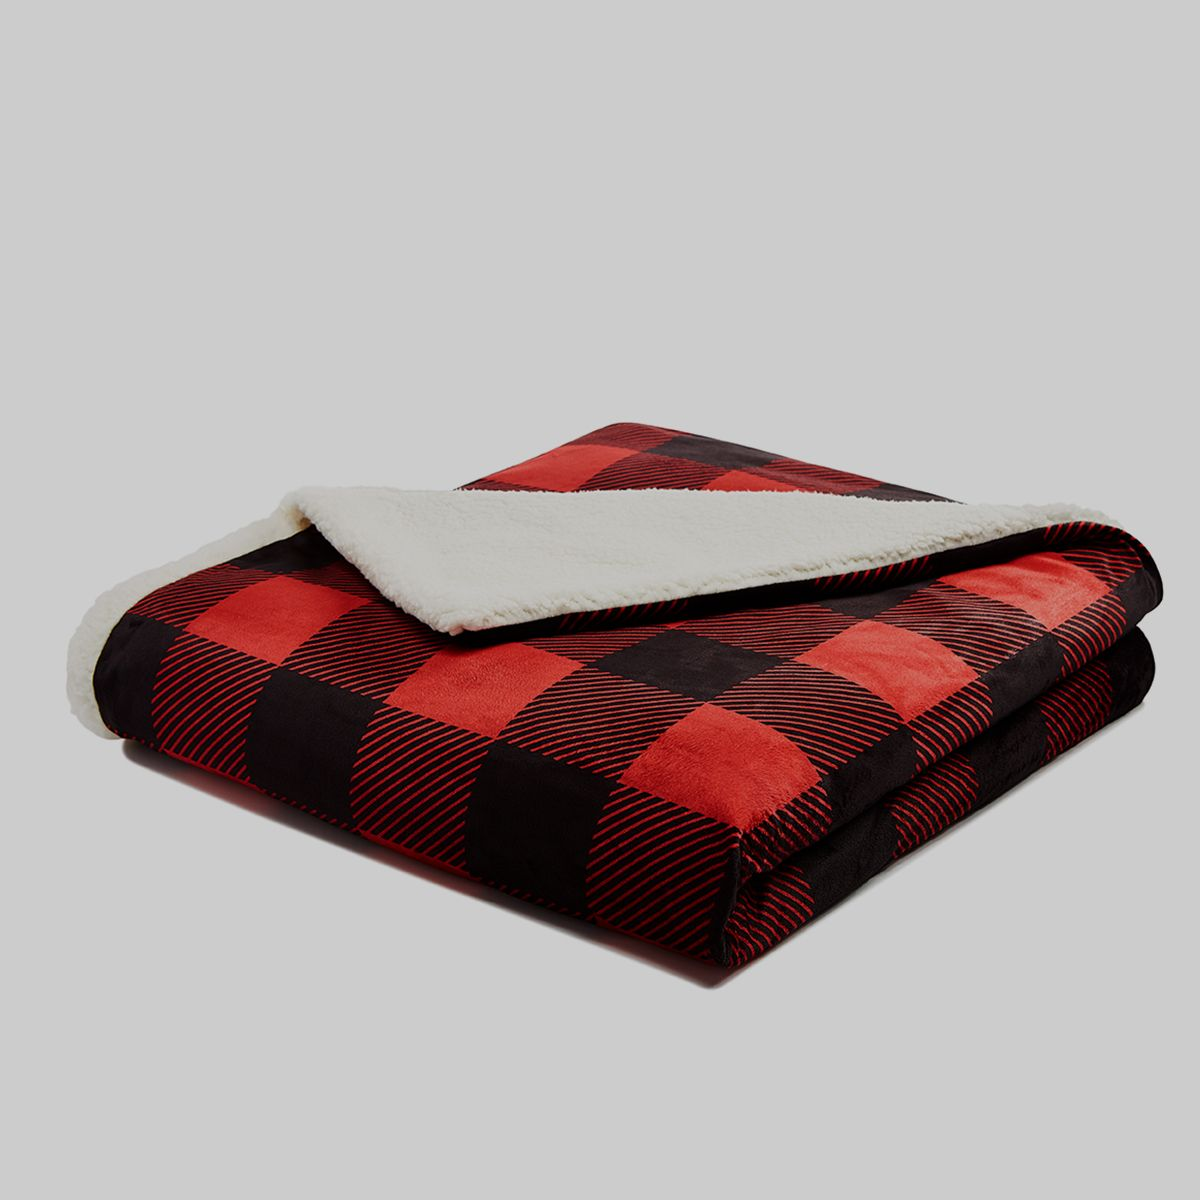 Blankets Amp Throws Flannel Winter Bedding Macy S